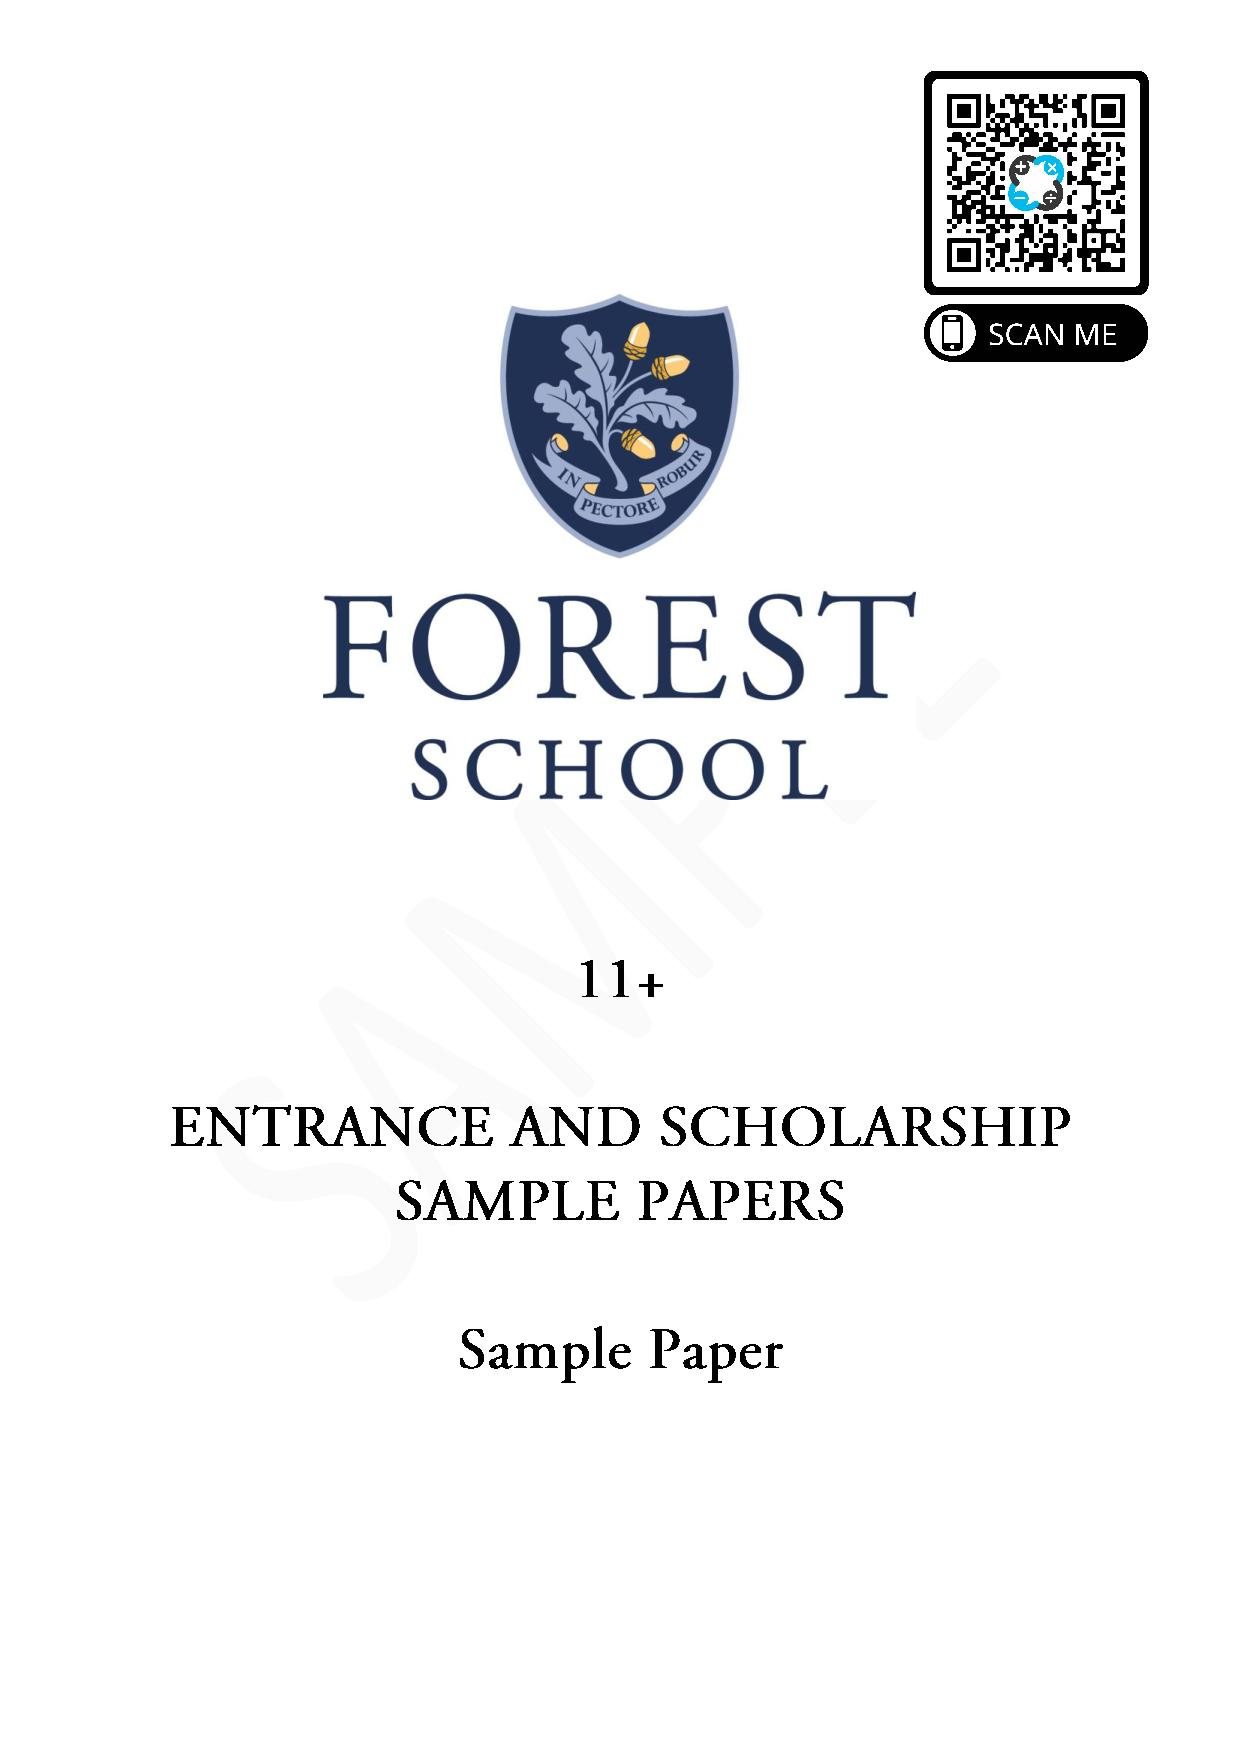 Forest School 11 Plus Maths Sample Paper 1 2020 2 page 001